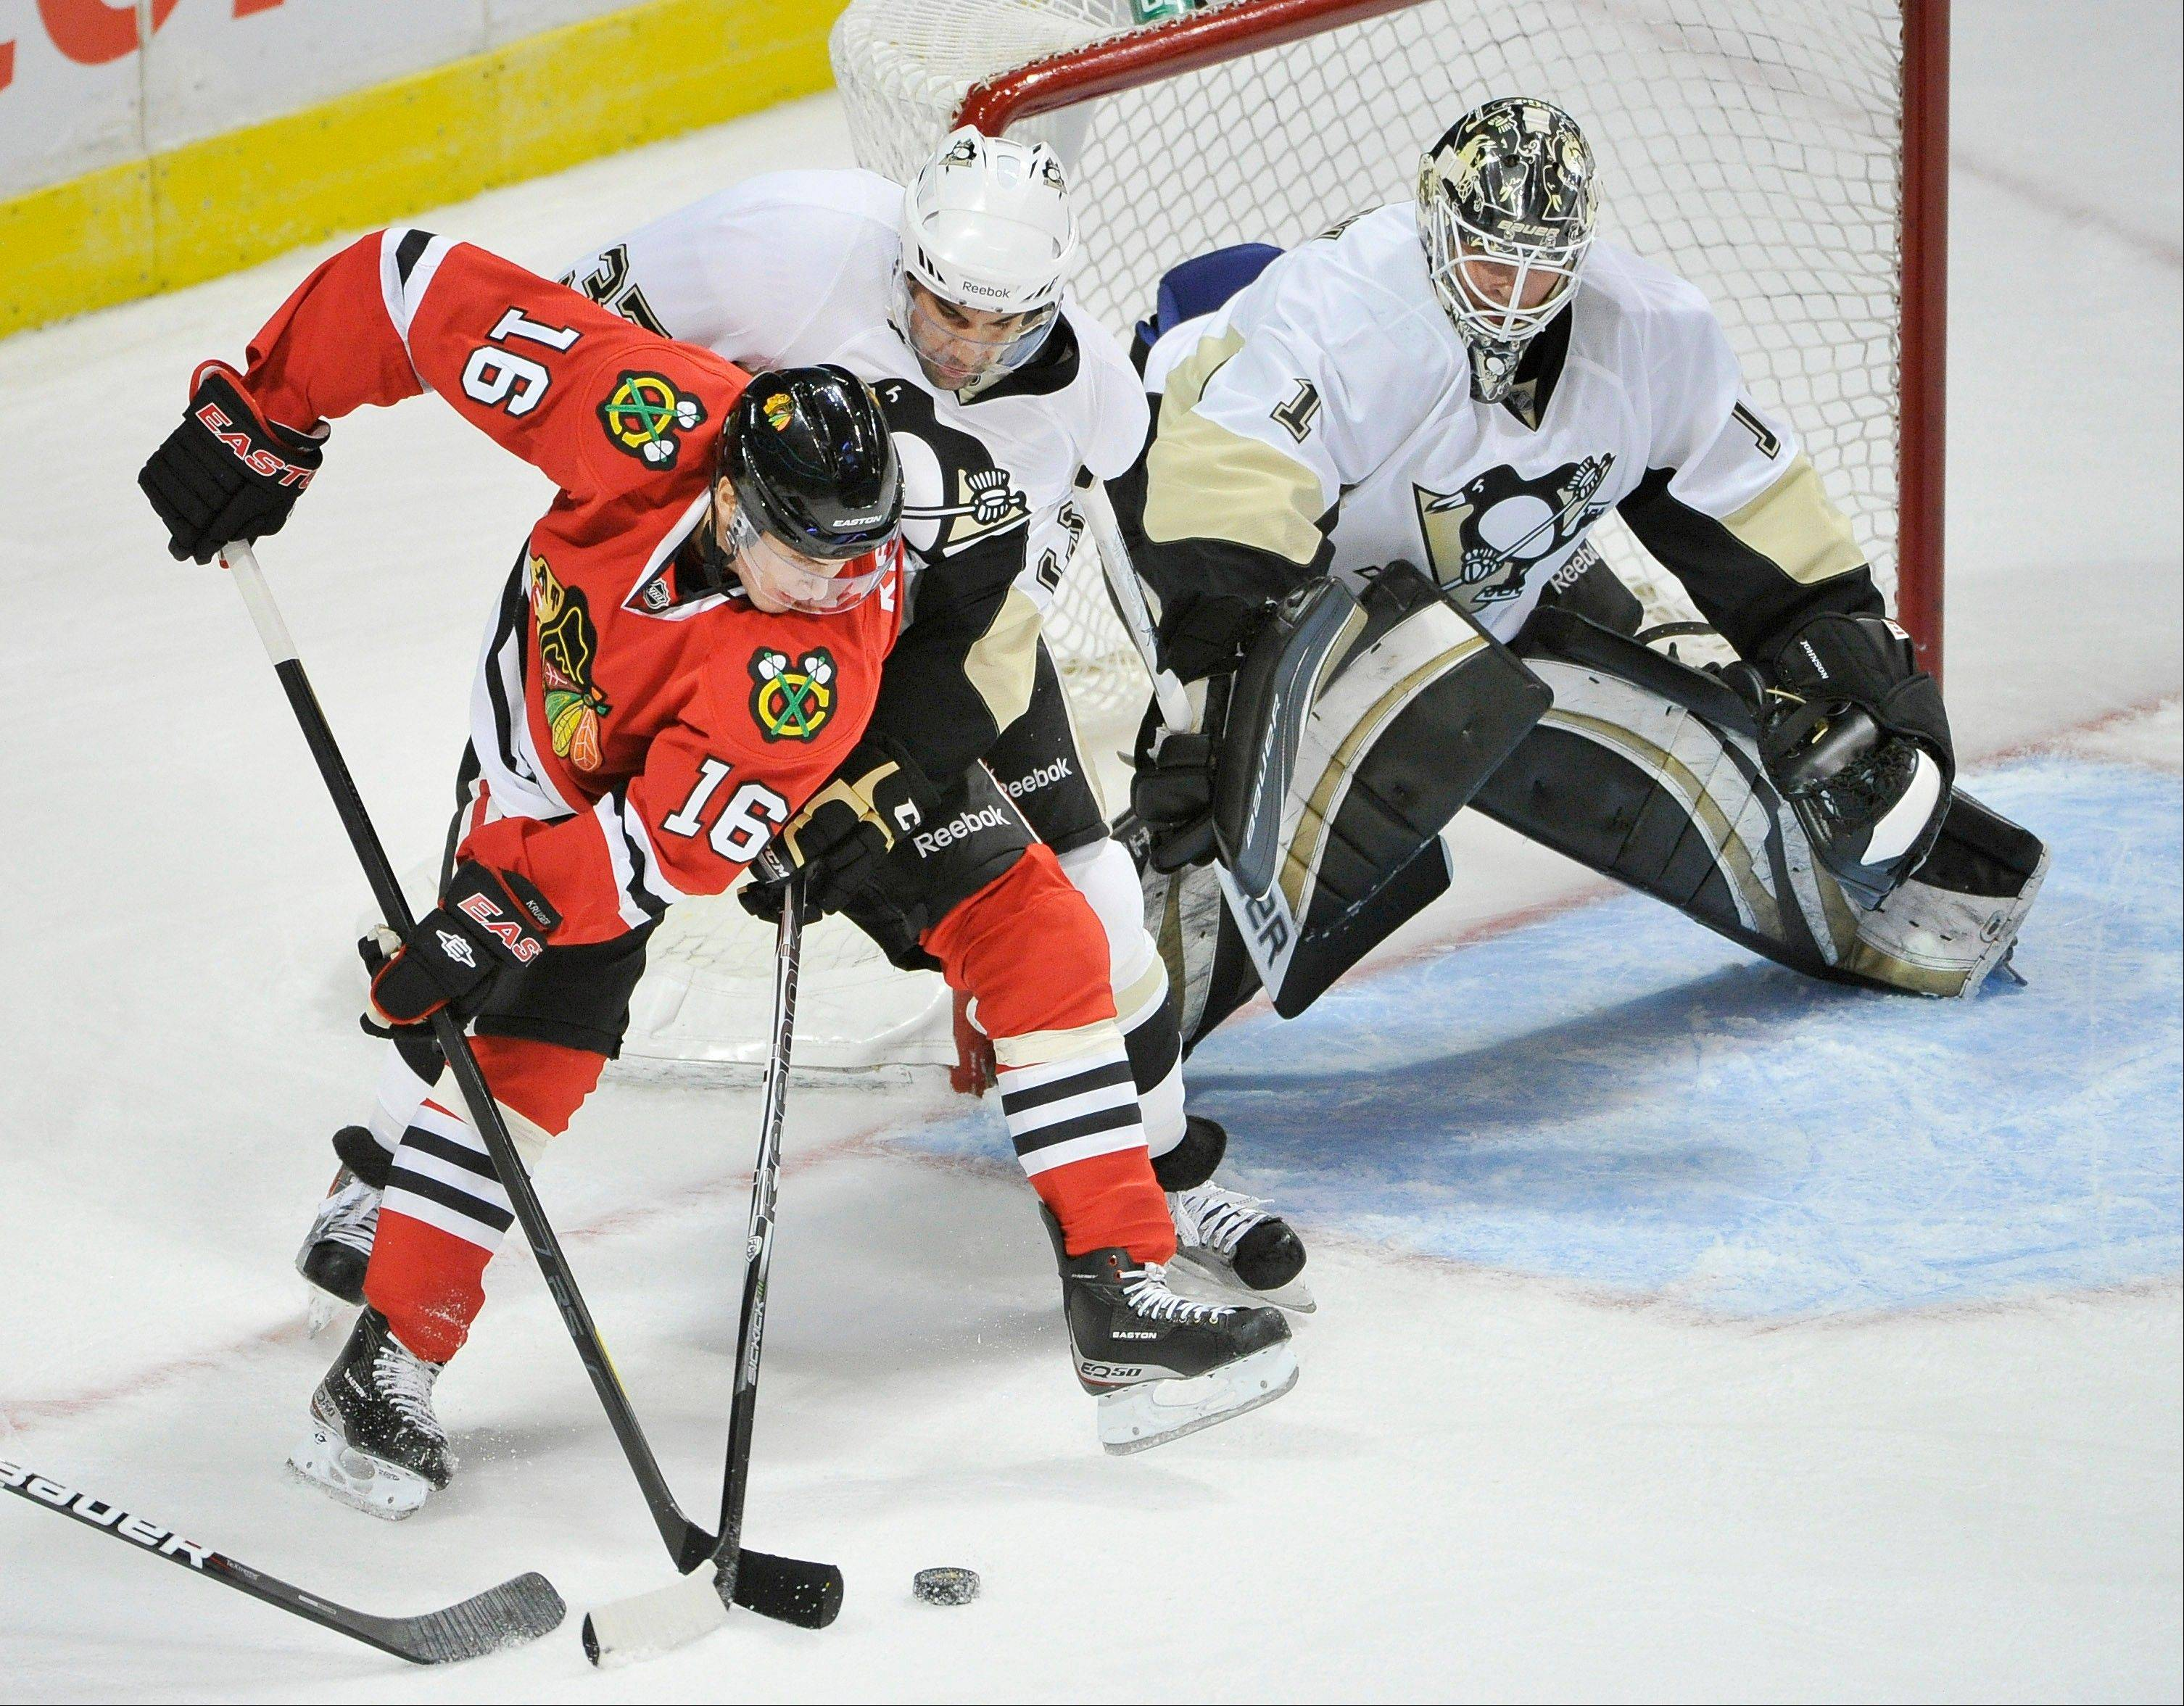 The Blackhawks� Marcus Kruger tries to score against Penguins defenseman Brian Strait and goalie Brent Johnson on Friday during preseason action at the United Center.